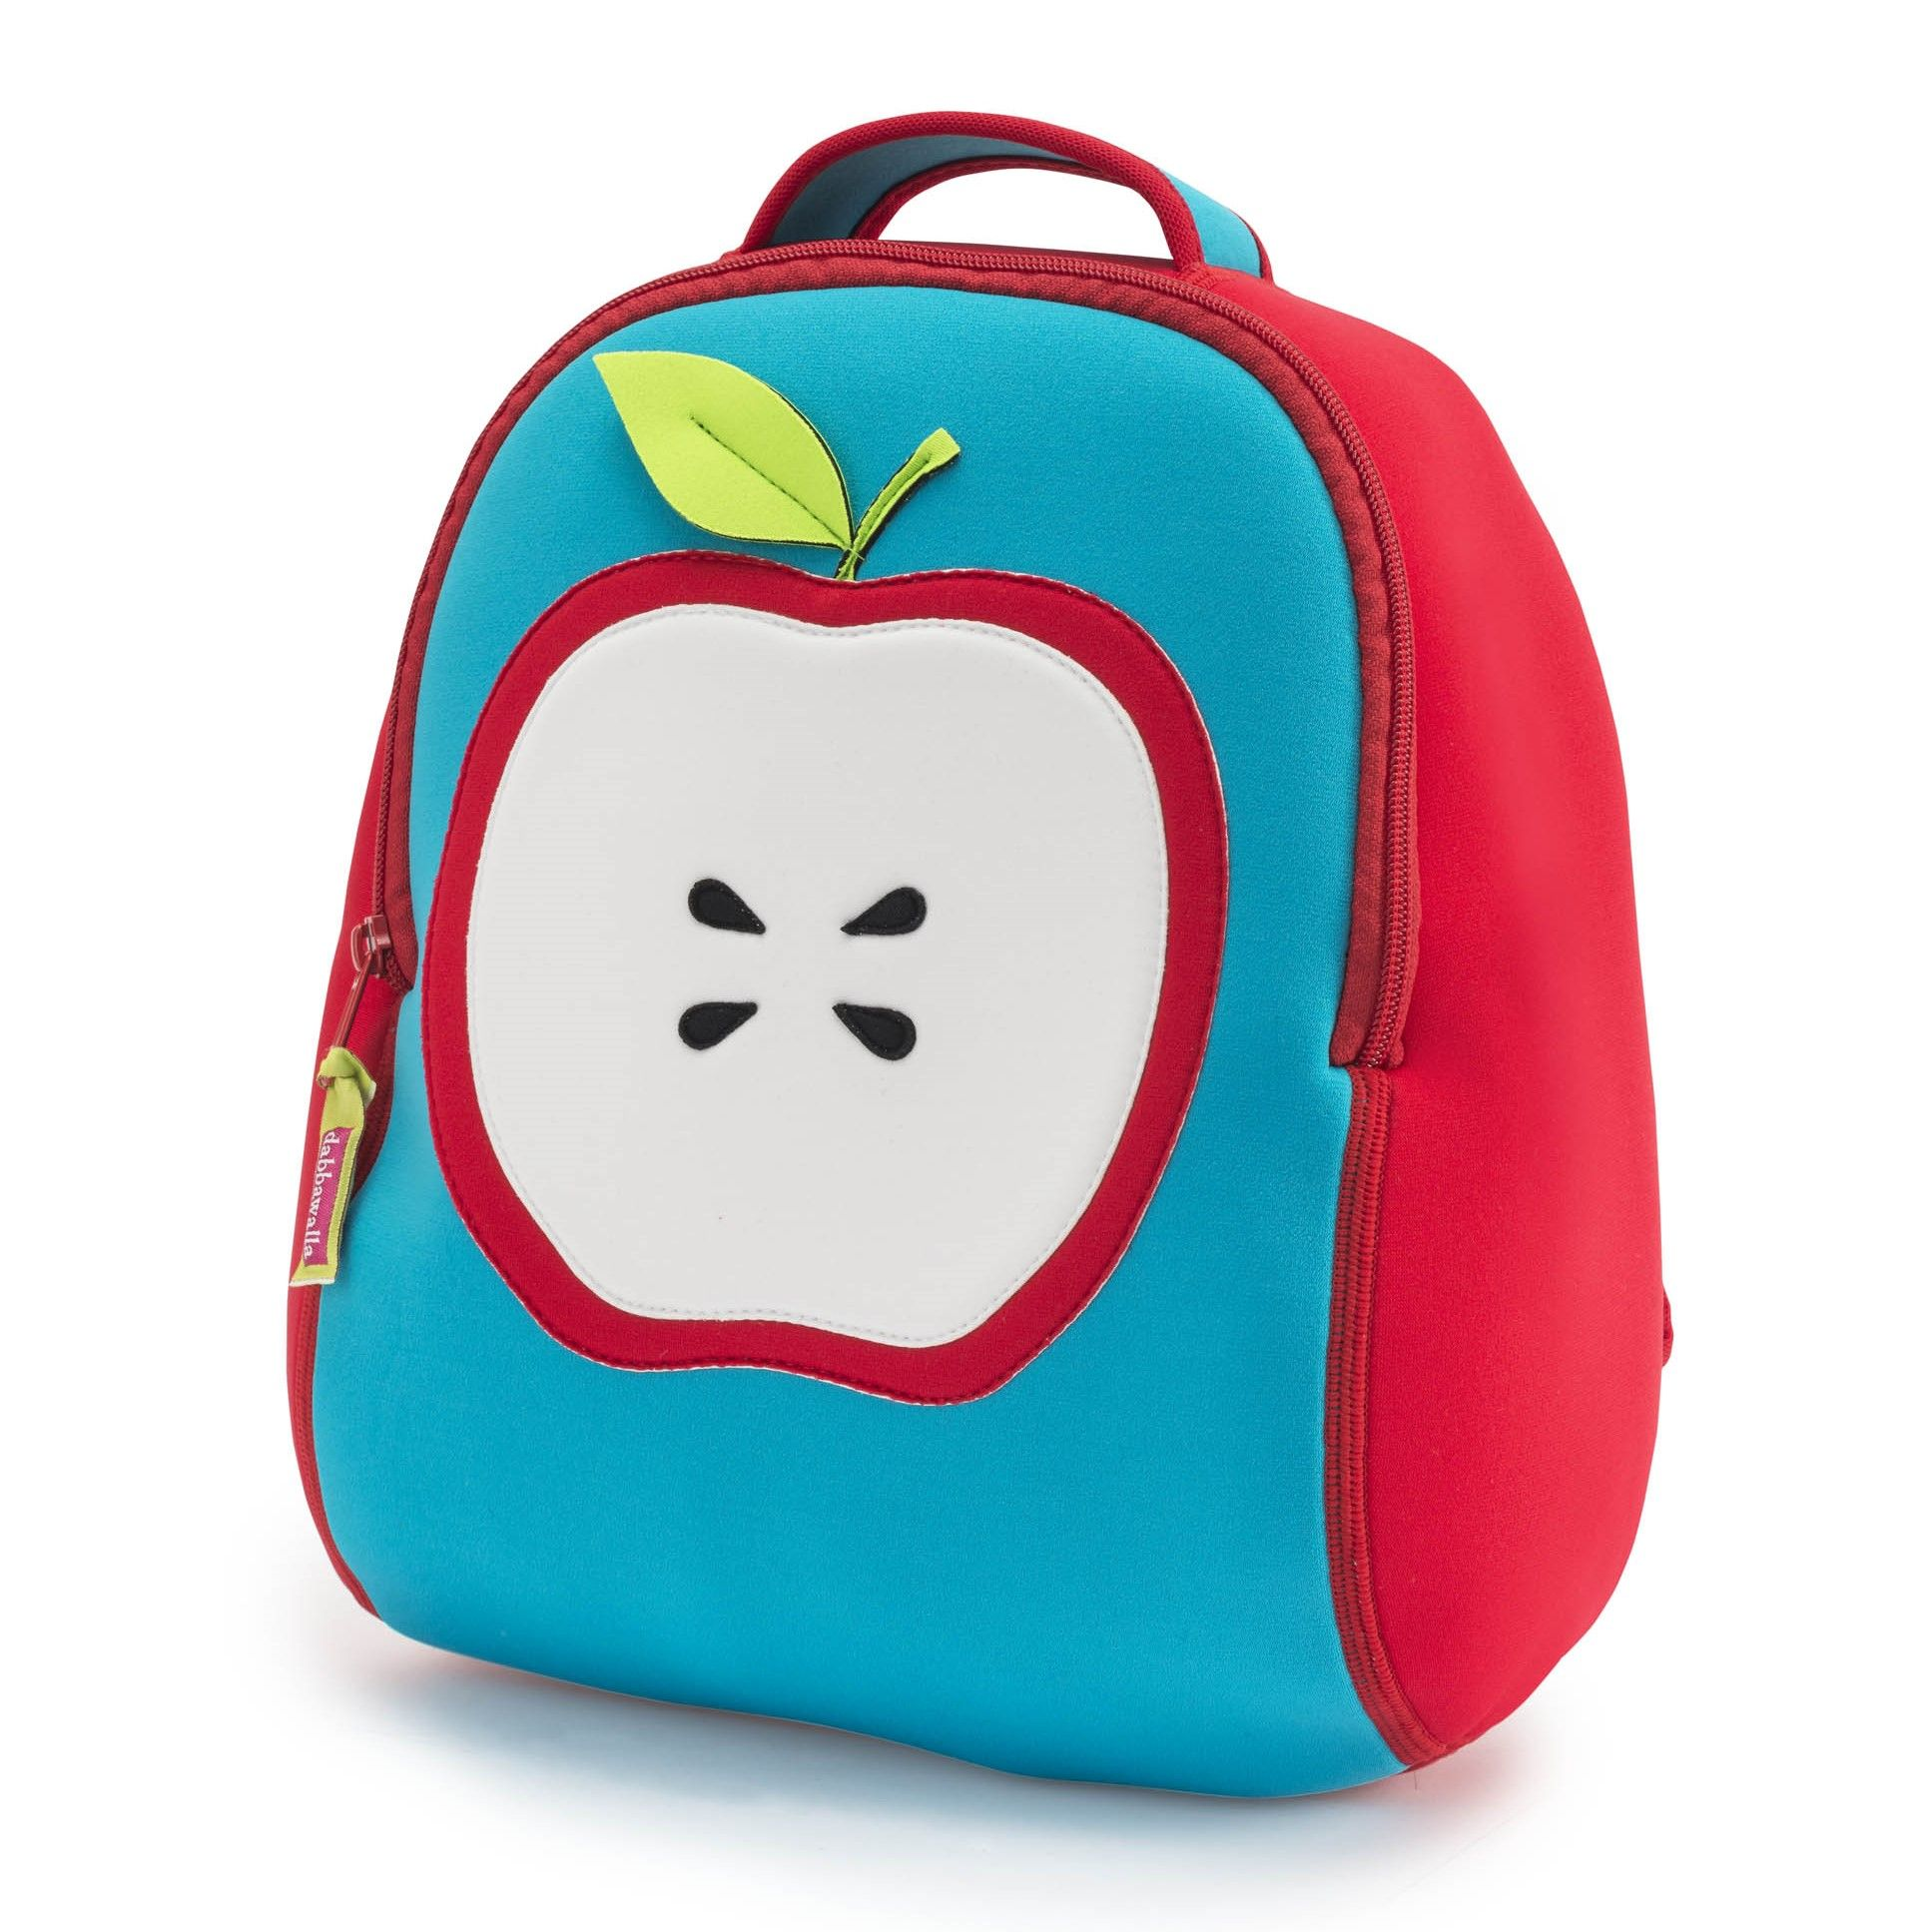 Deliciously sweet, this apple themed preschool backpack is